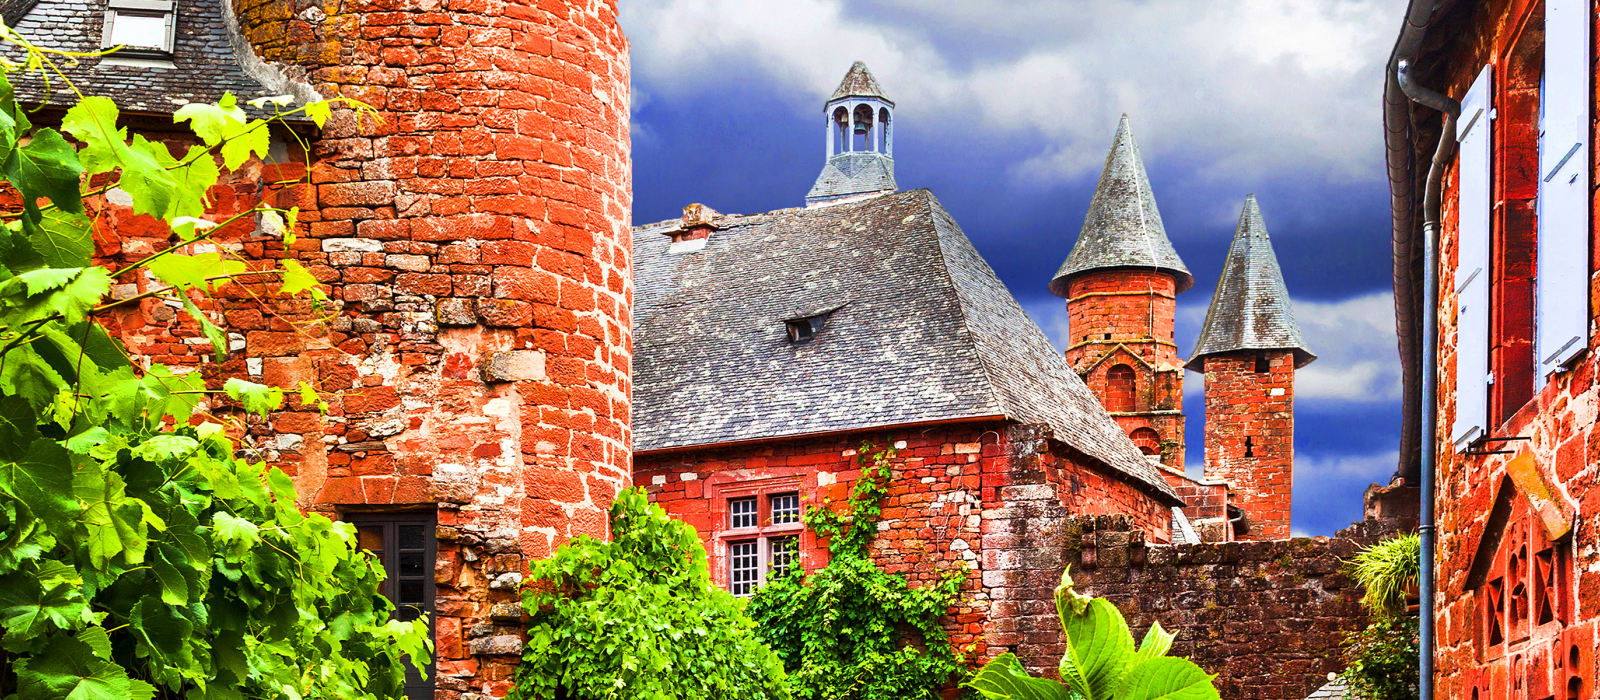 Collonges-la-Rouge et Turenne